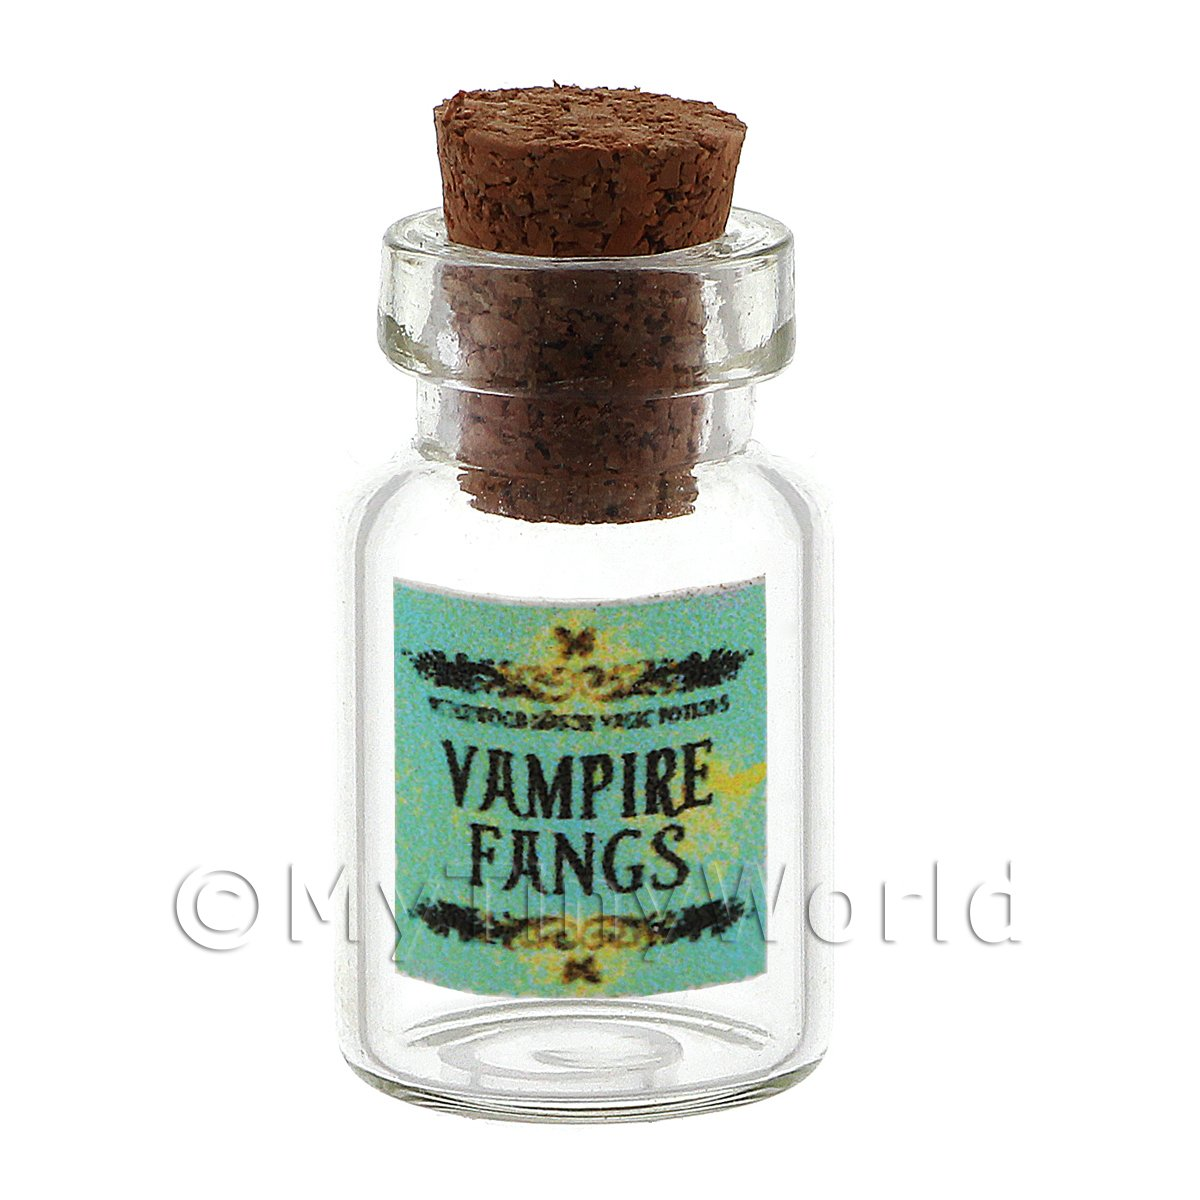 Dolls House Miniature Vampire Fangs Magic Storage Jar (Style 2)